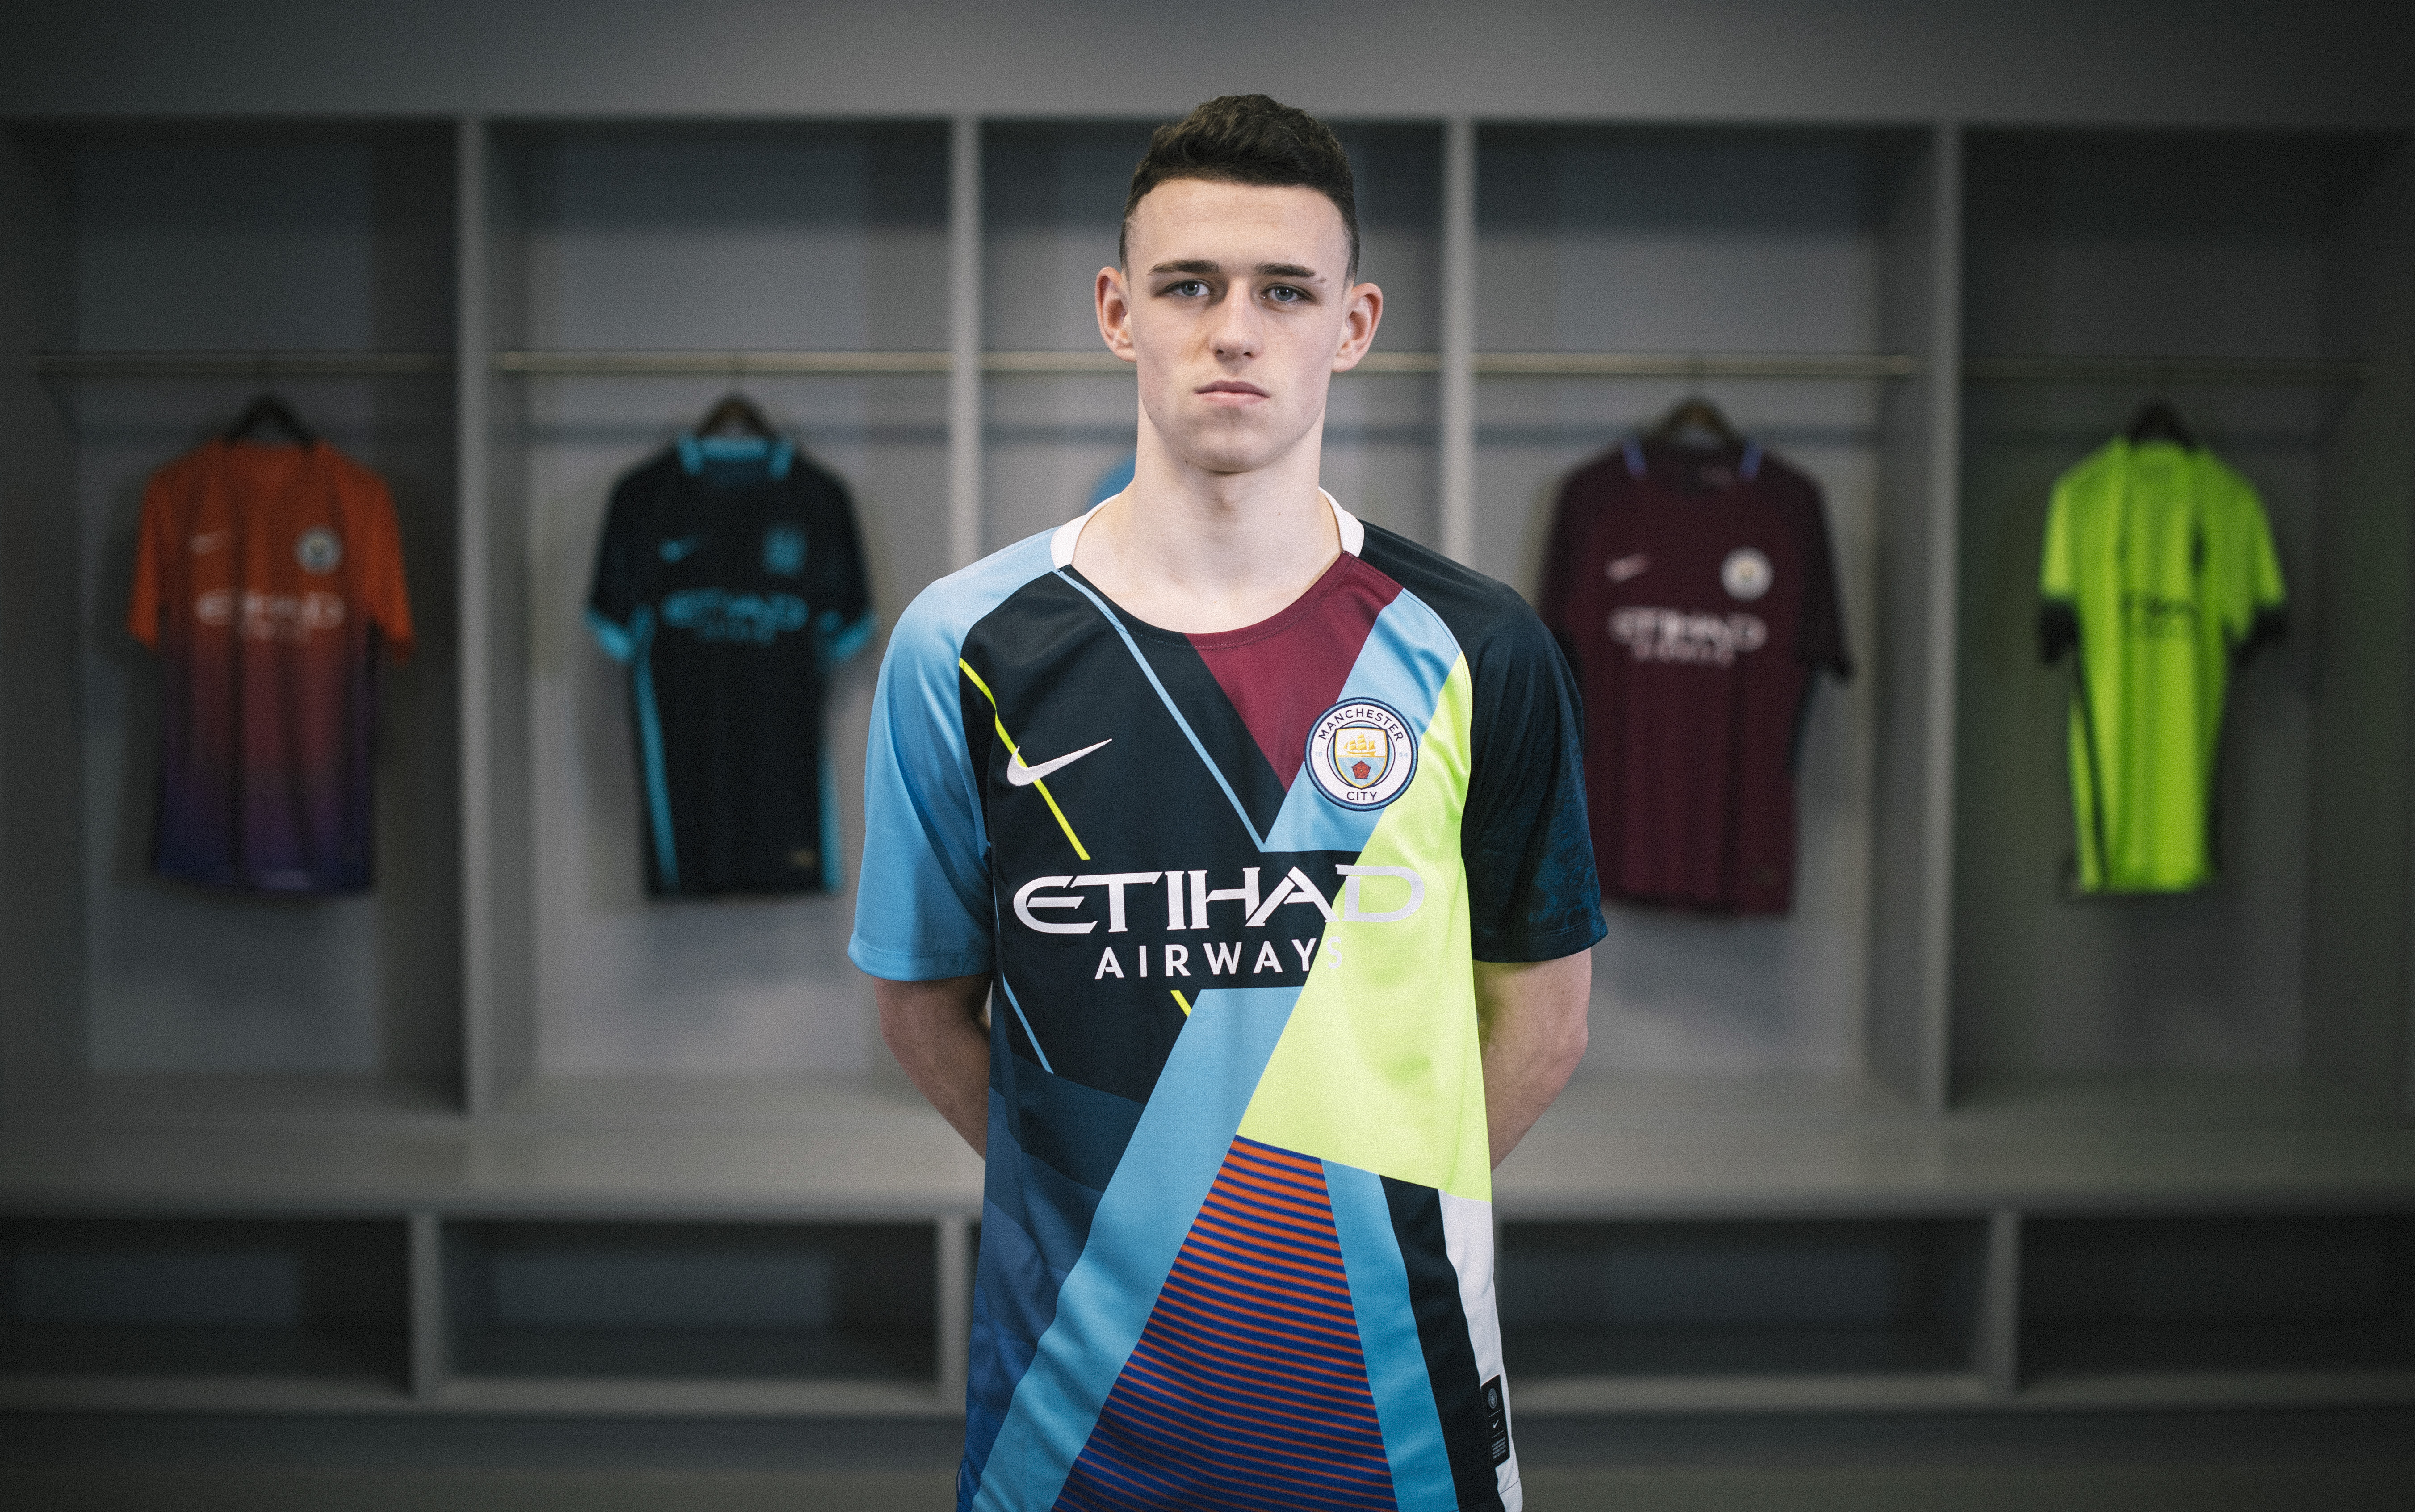 newest cfc71 9edca HYPES ARE US   hypesRus.com - Nike X Manchester City   HYPES ...